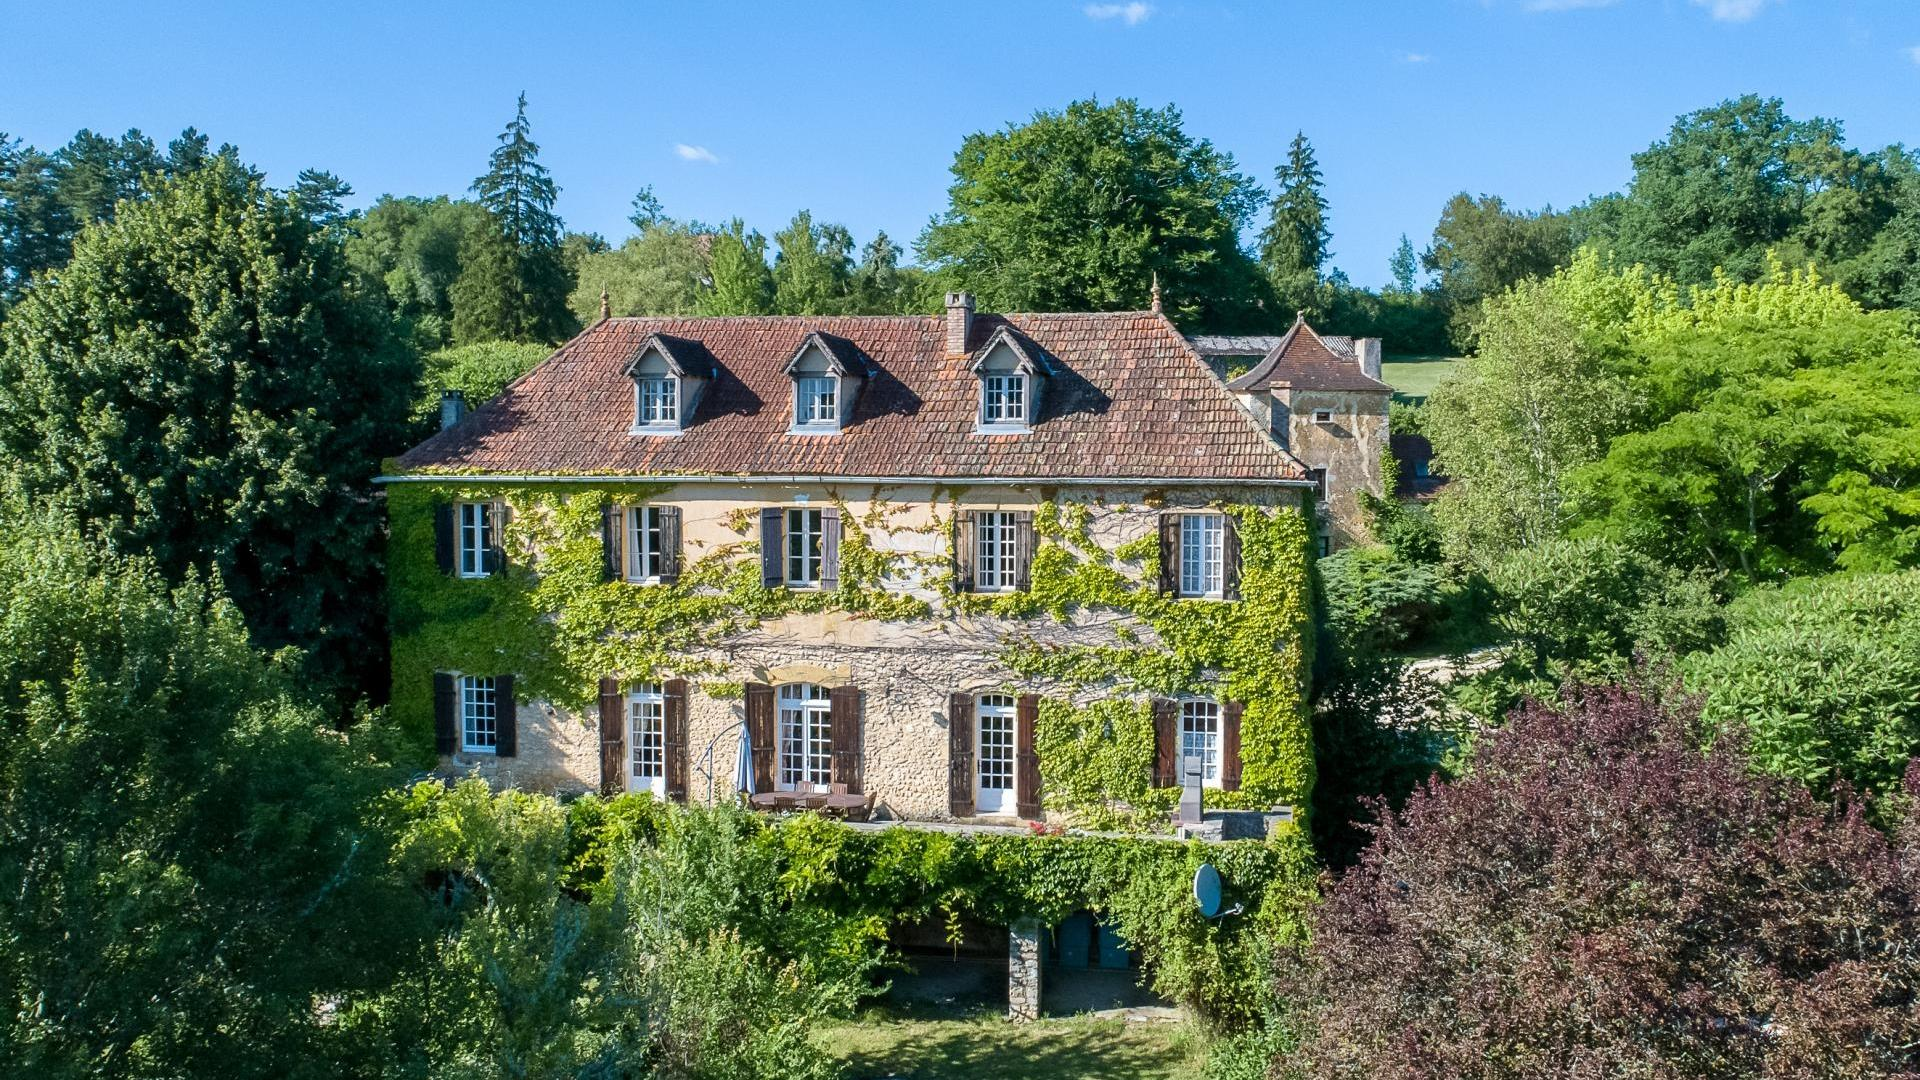 6 Bedroom Manor in Aquitaine, France